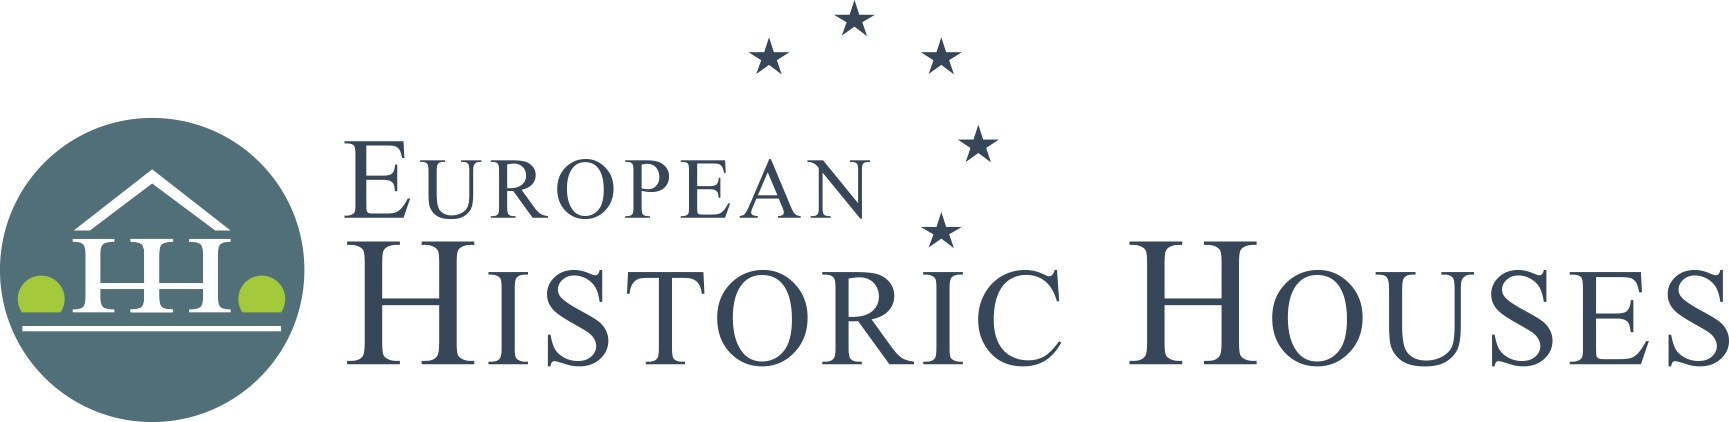 logo for European Historic Houses Association